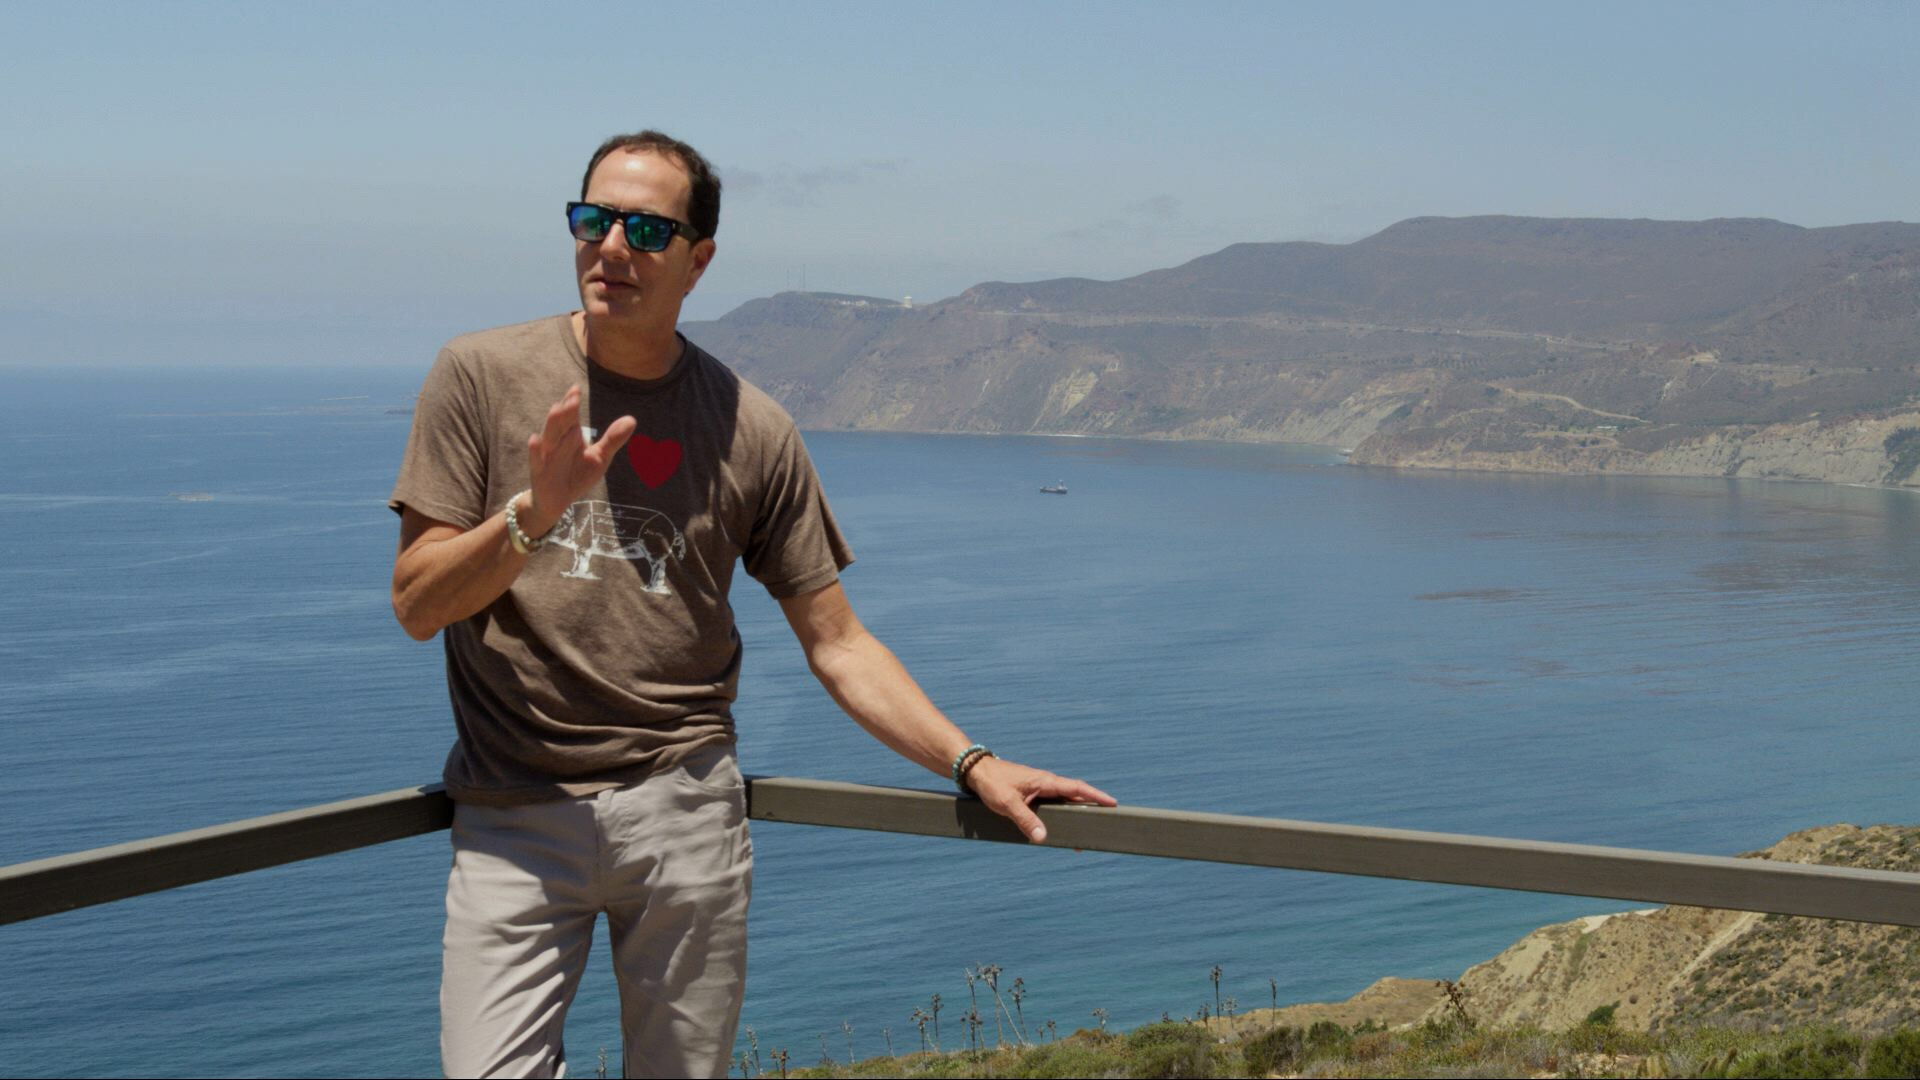 Sam at   Cuatro Cuartos vineyard   overlooking Ensenada